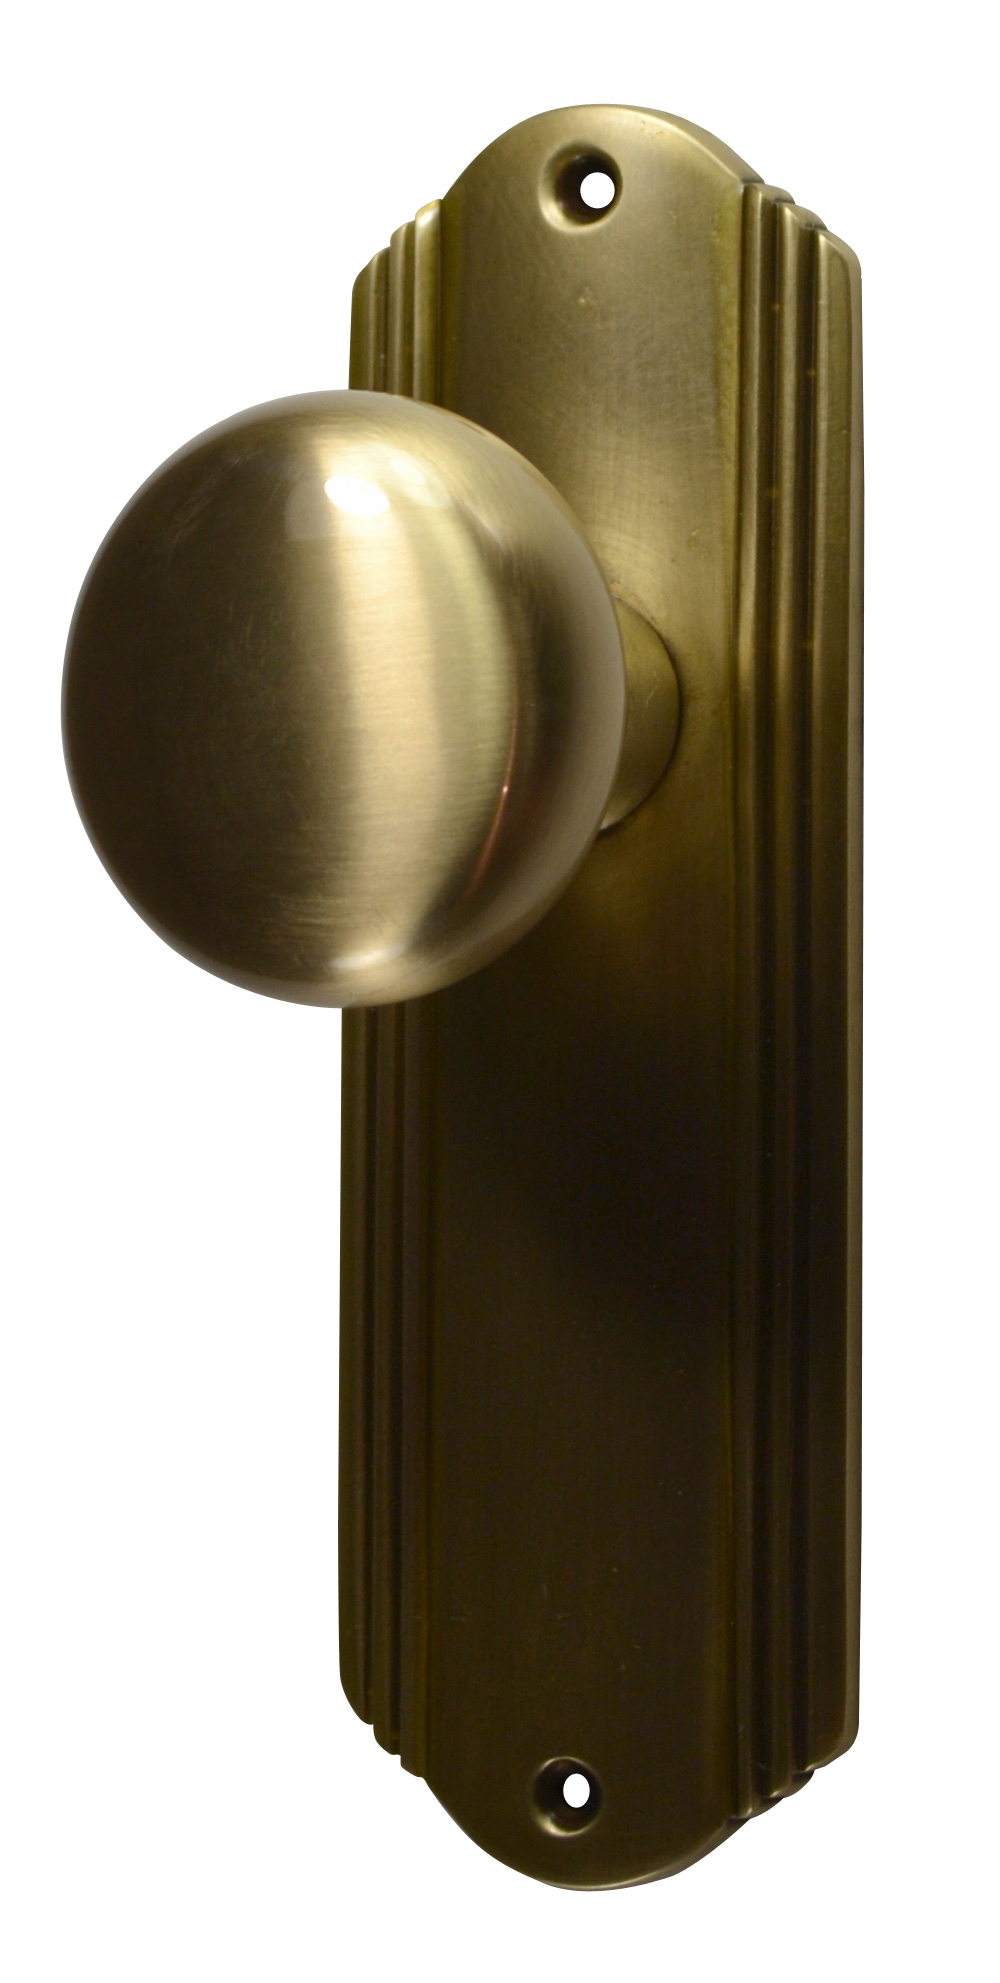 Solid Brass Round Door Knob Set with Art Deco Back Plate (Antique Brass  Finish) - Solid Brass Round Door Knob Set With Art Deco Back Plate (Antique